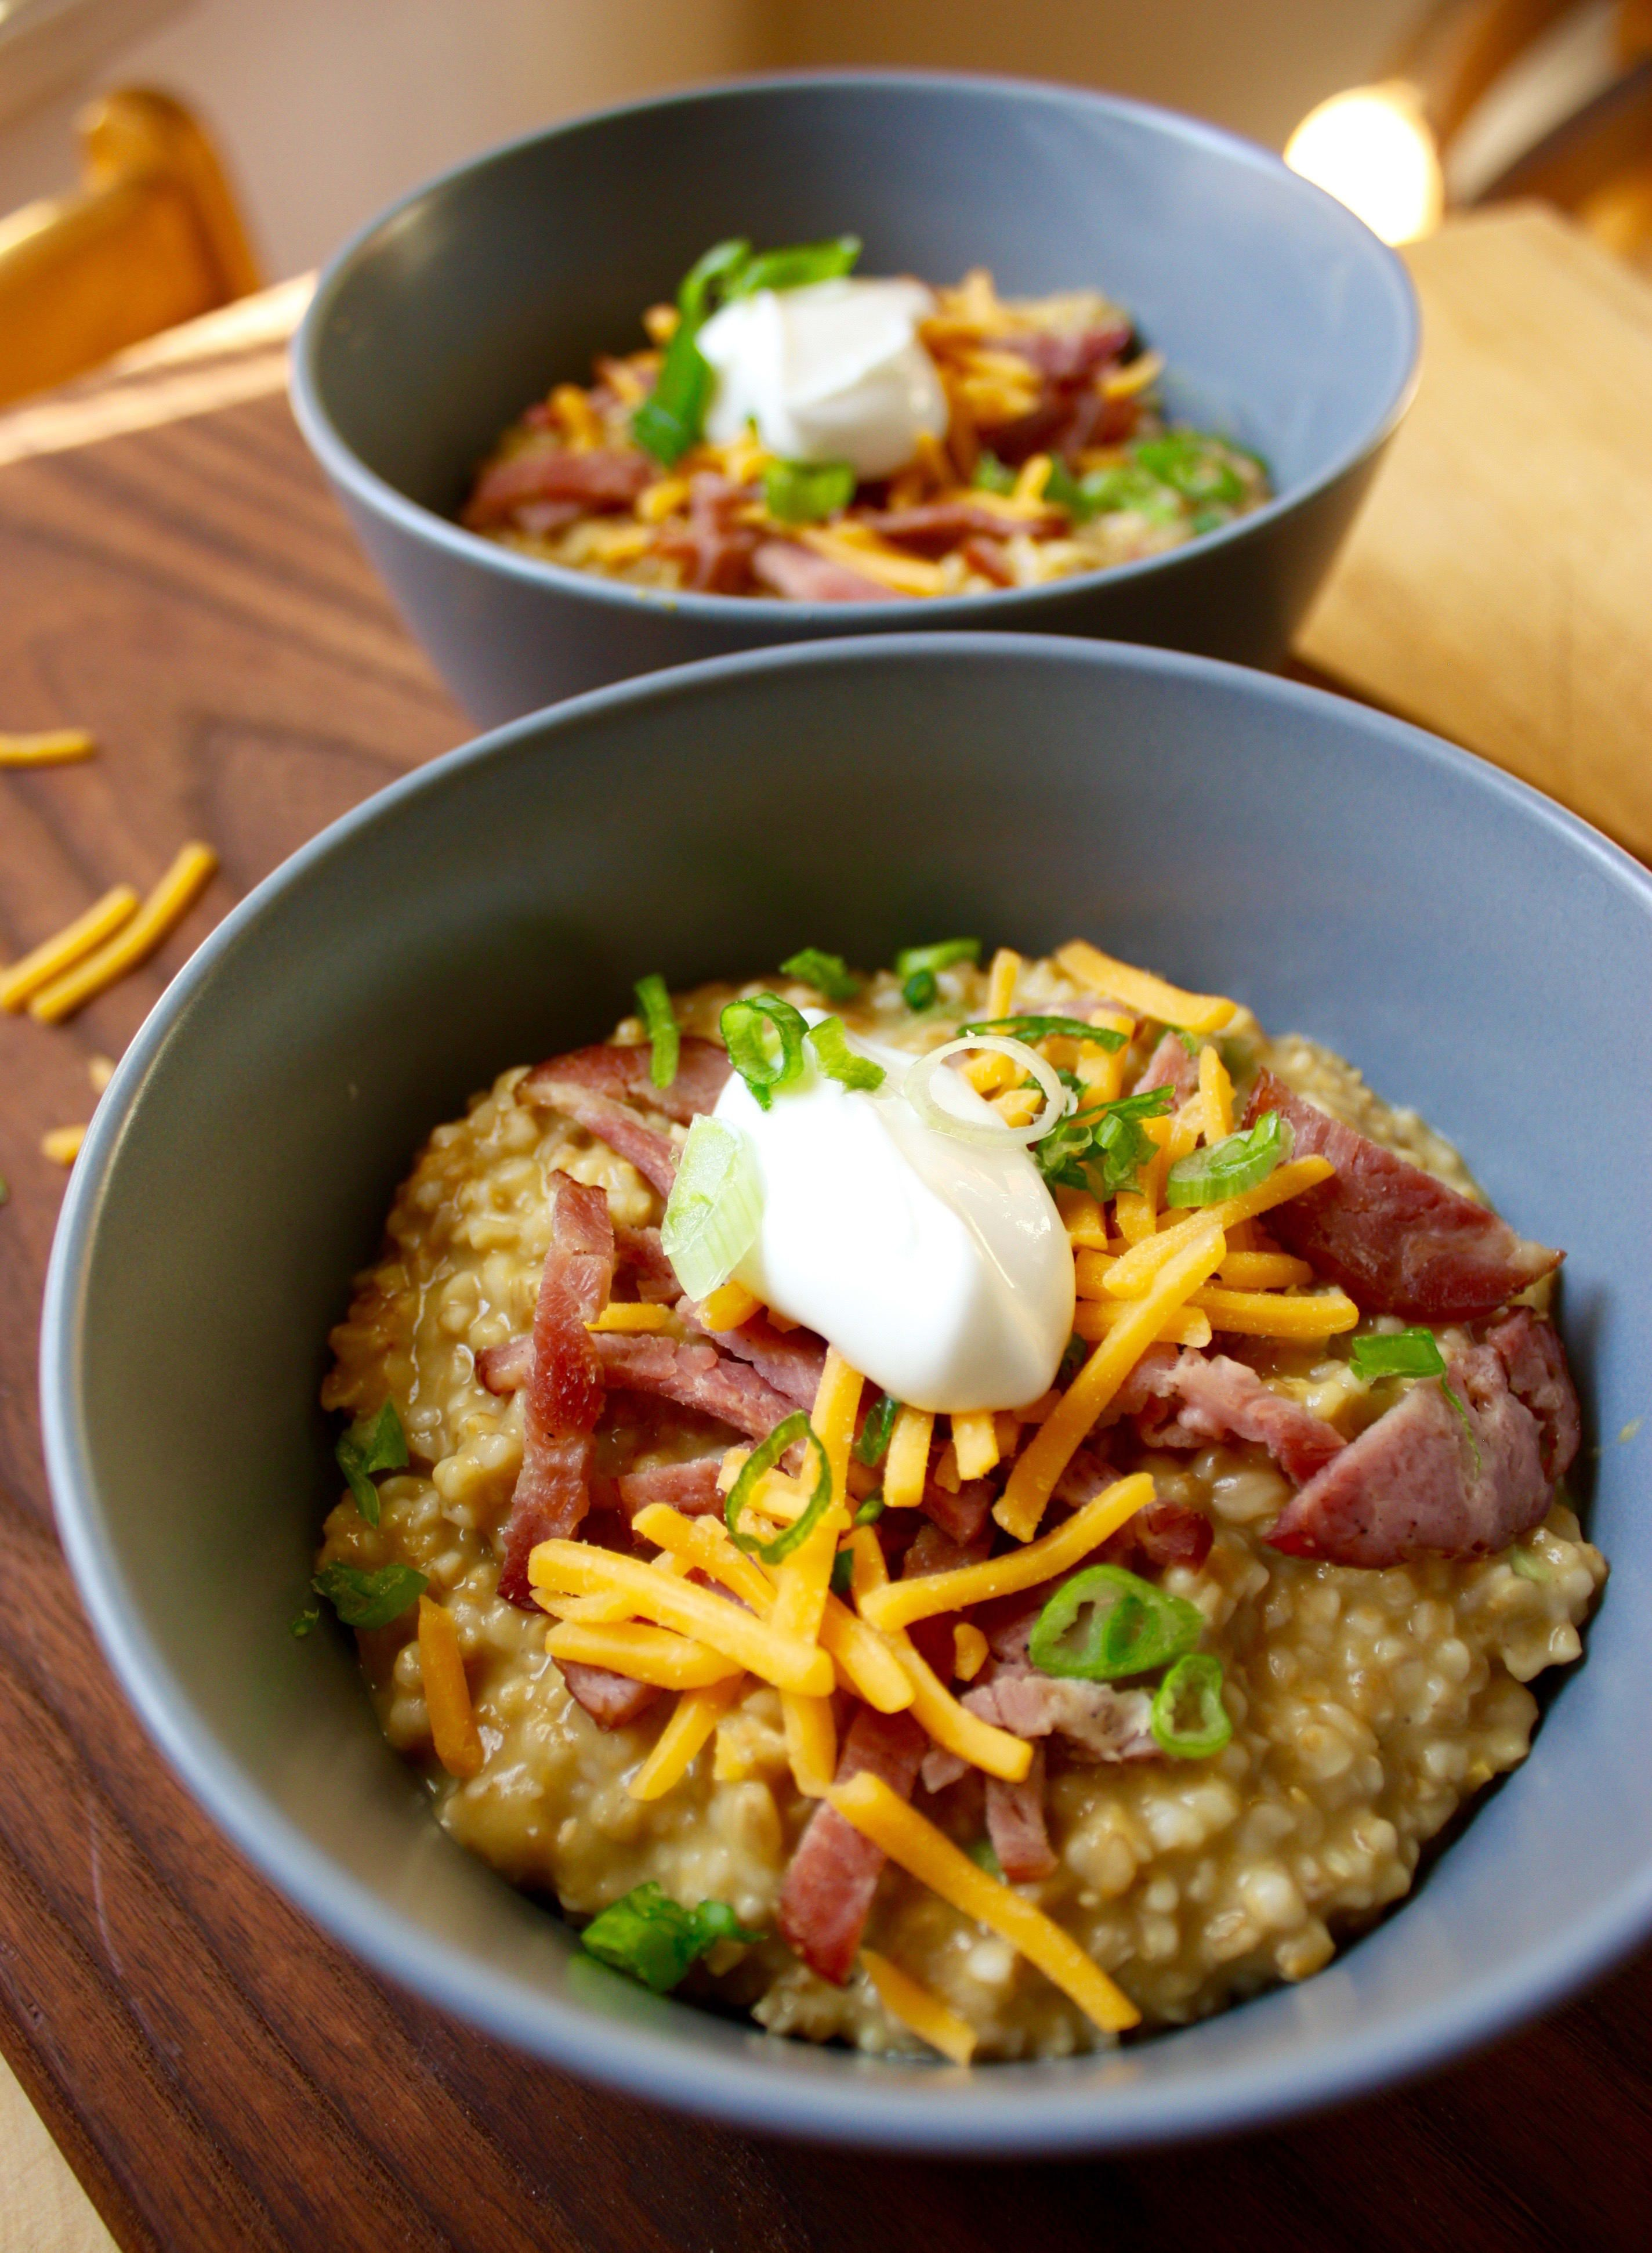 SAVORY IRISH OATS WITH TURKEY BACON CHEDDAR AND CHIVES